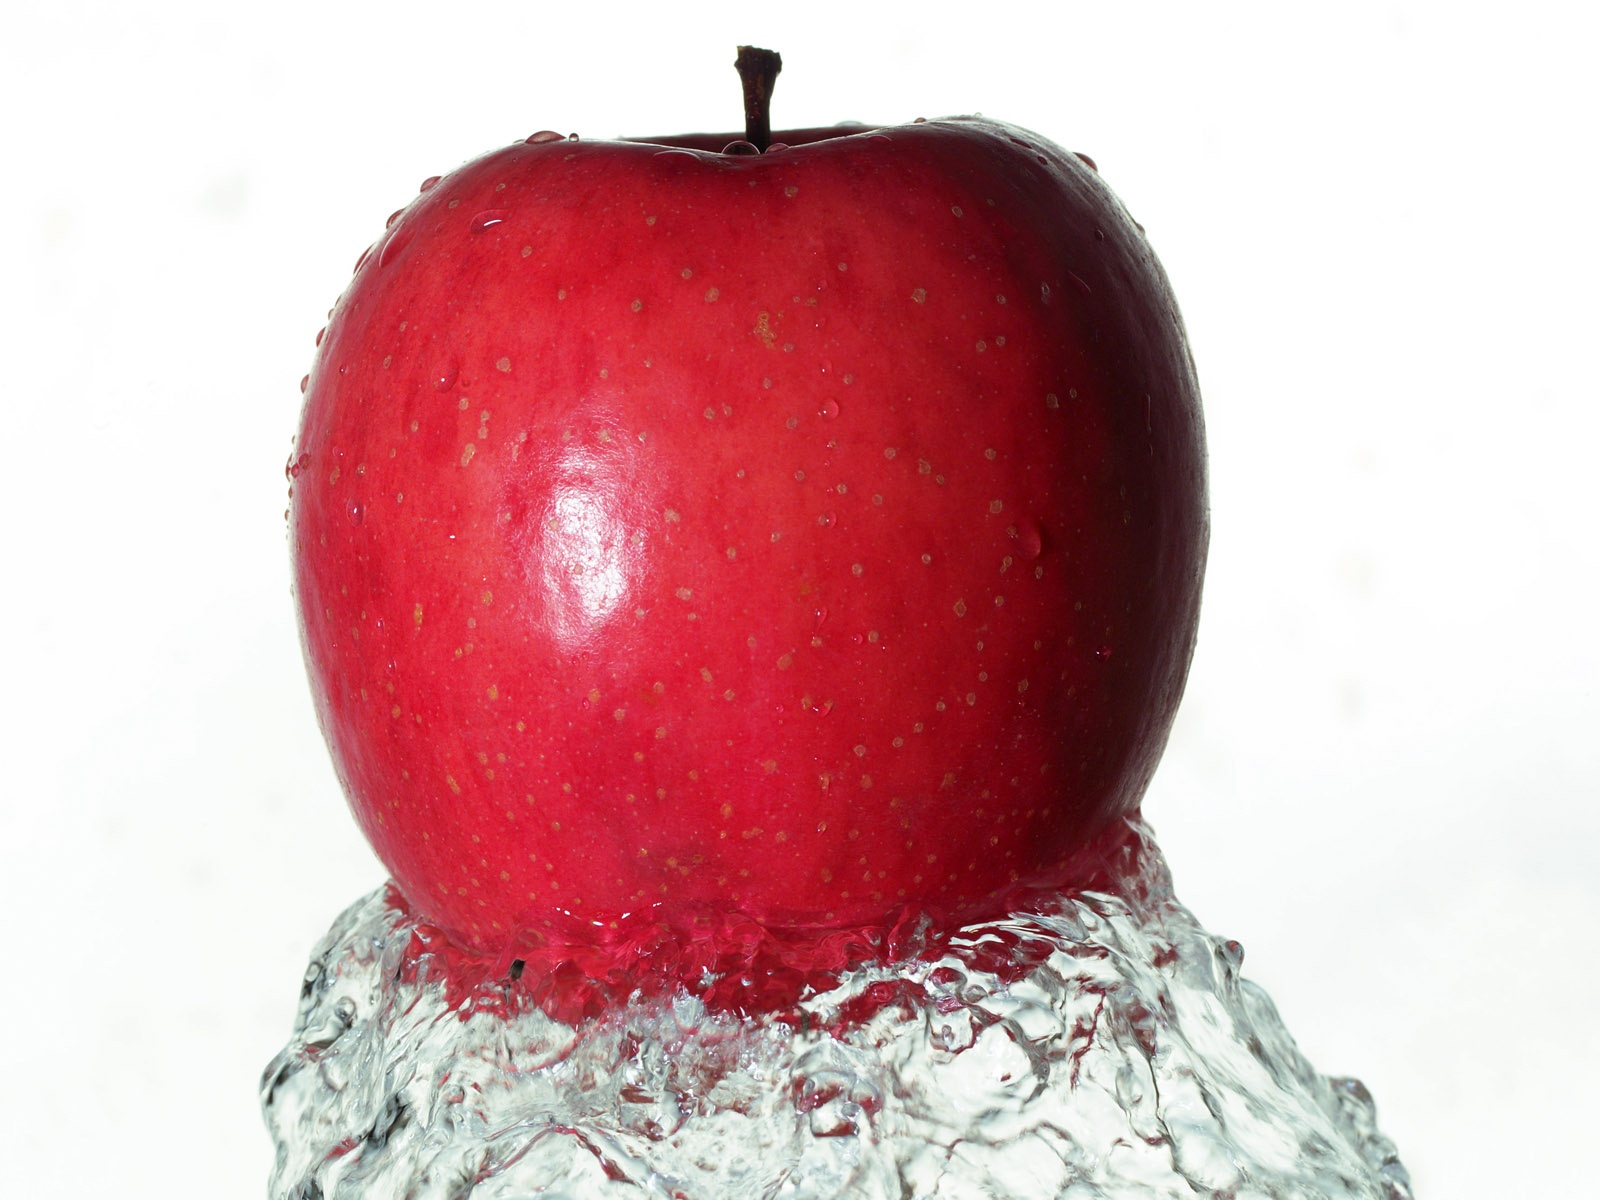 click to free download the wallpaper--Natural Fruits Image, Red Apple Pushed Up by Water, Innervation Fruit